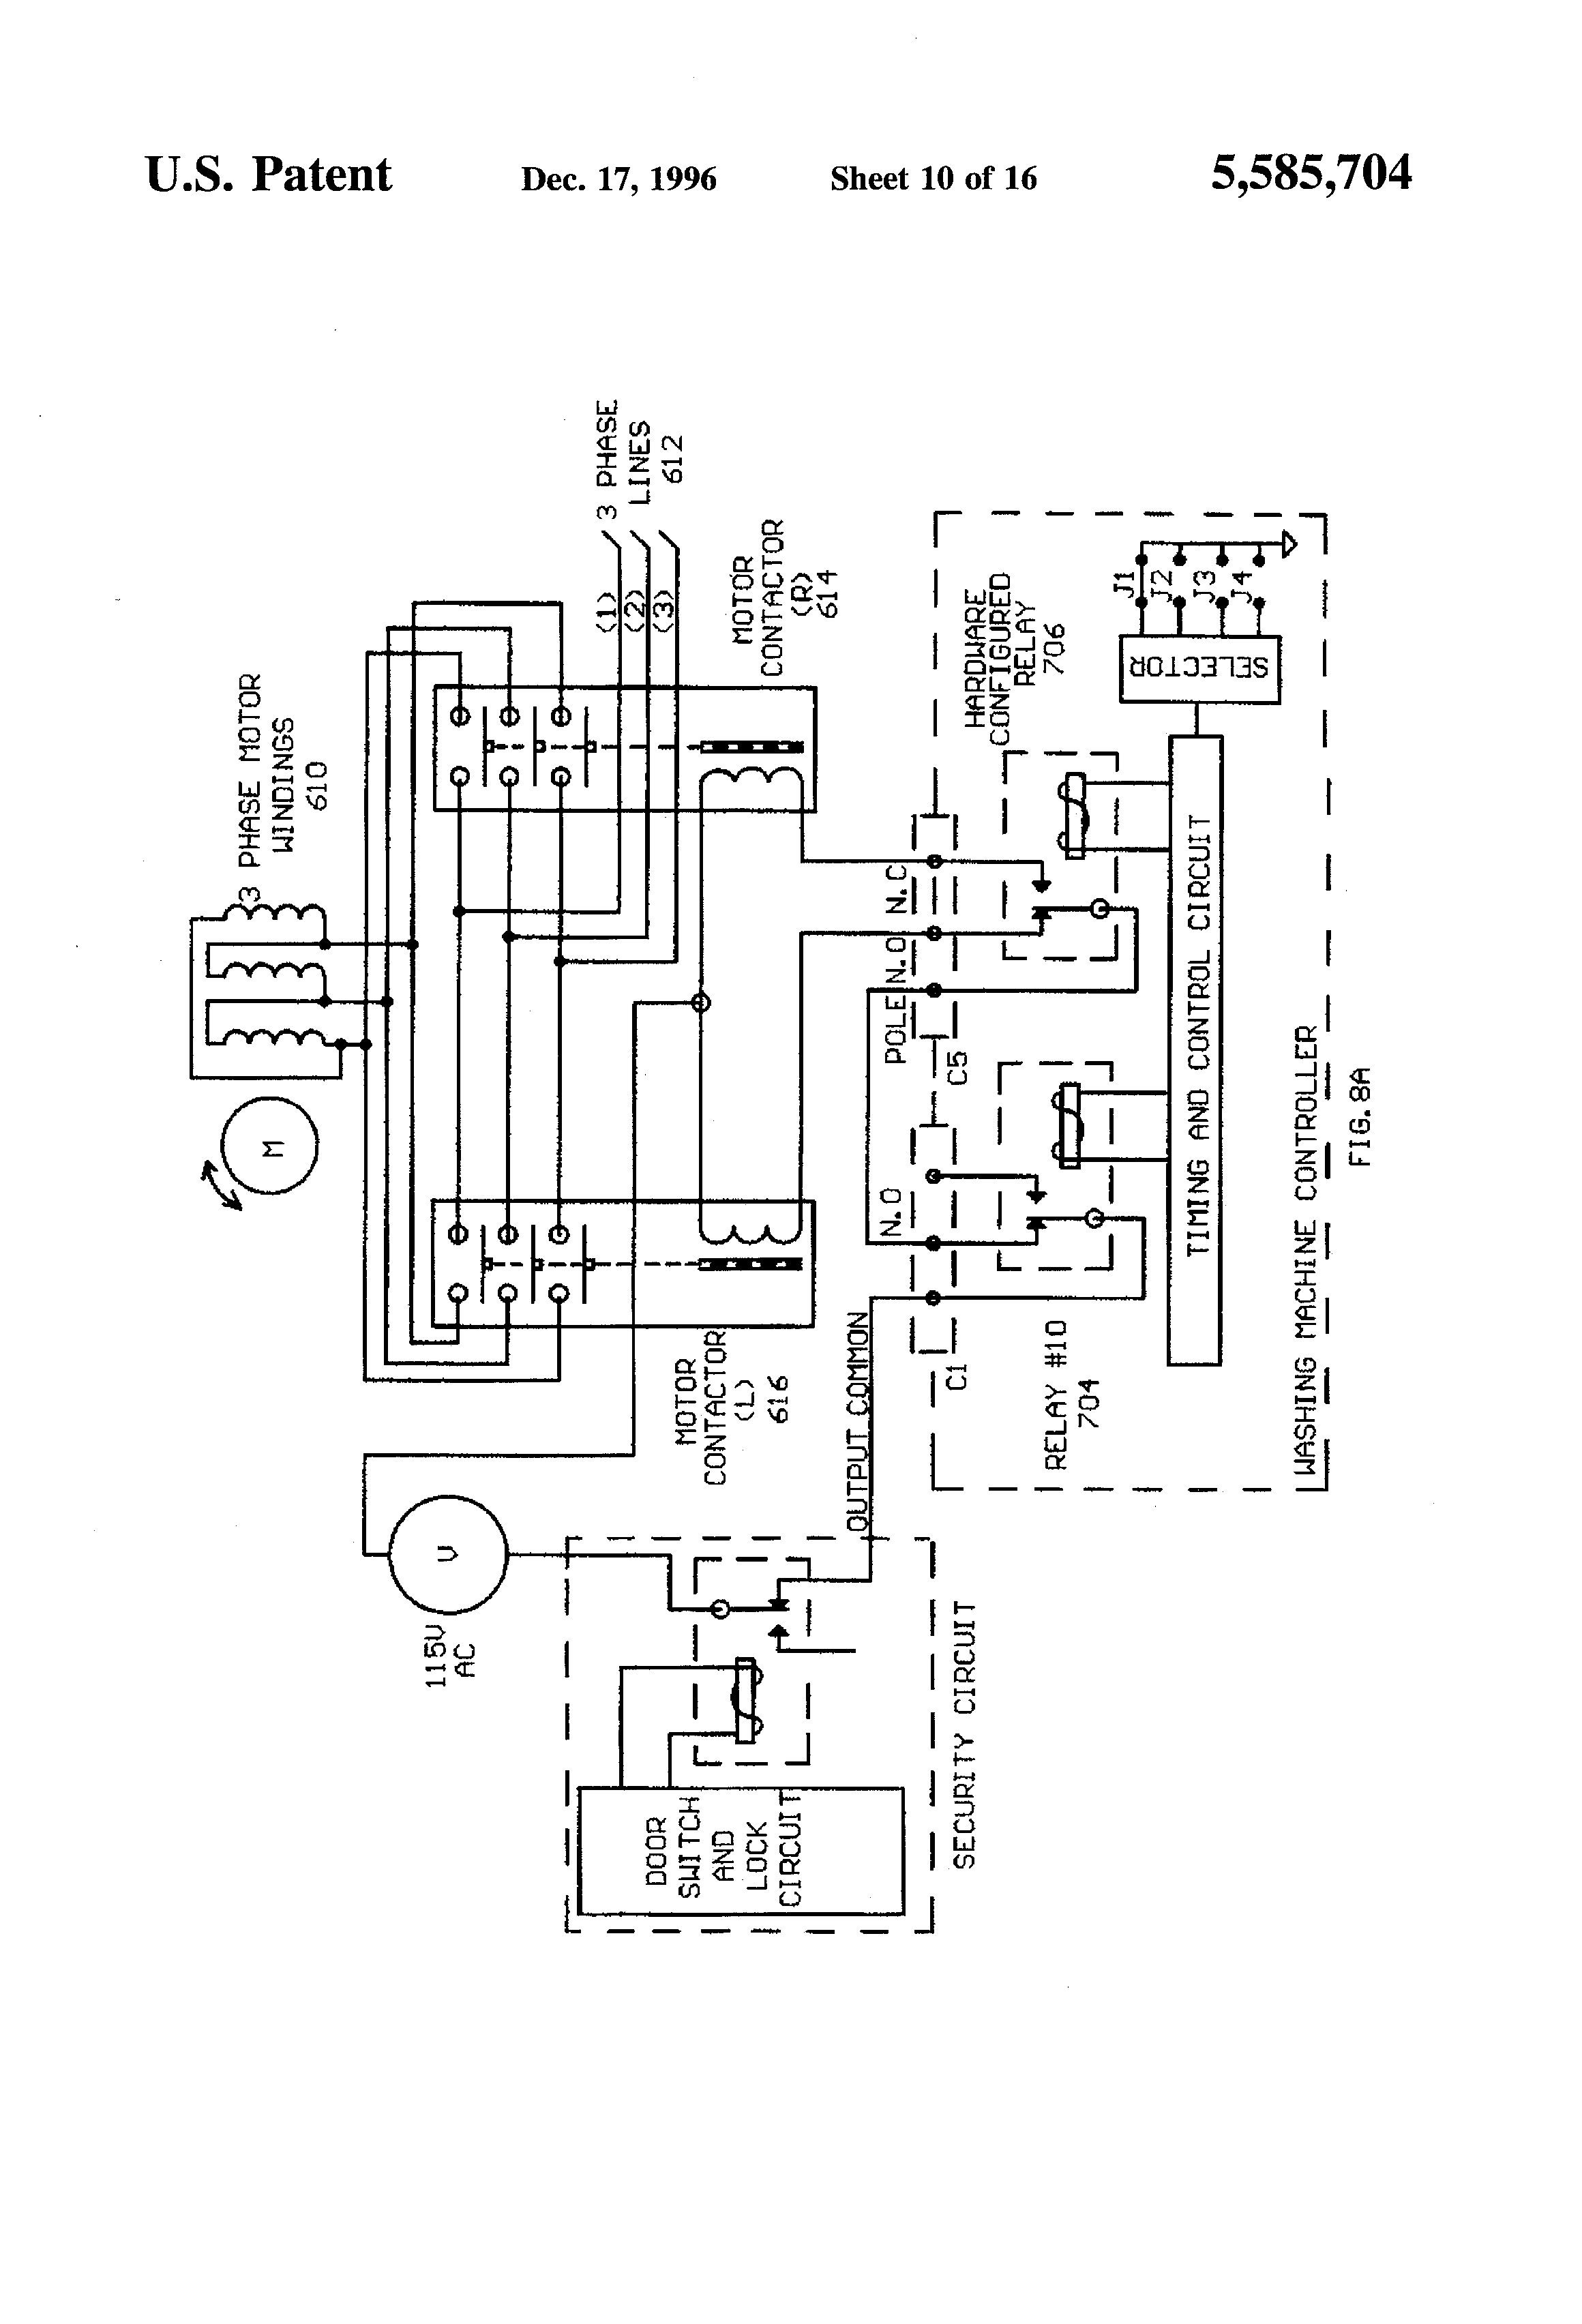 medium resolution of wiring diagram of washing machine motor wiring diagram washing how to read washing machine wiring diagram